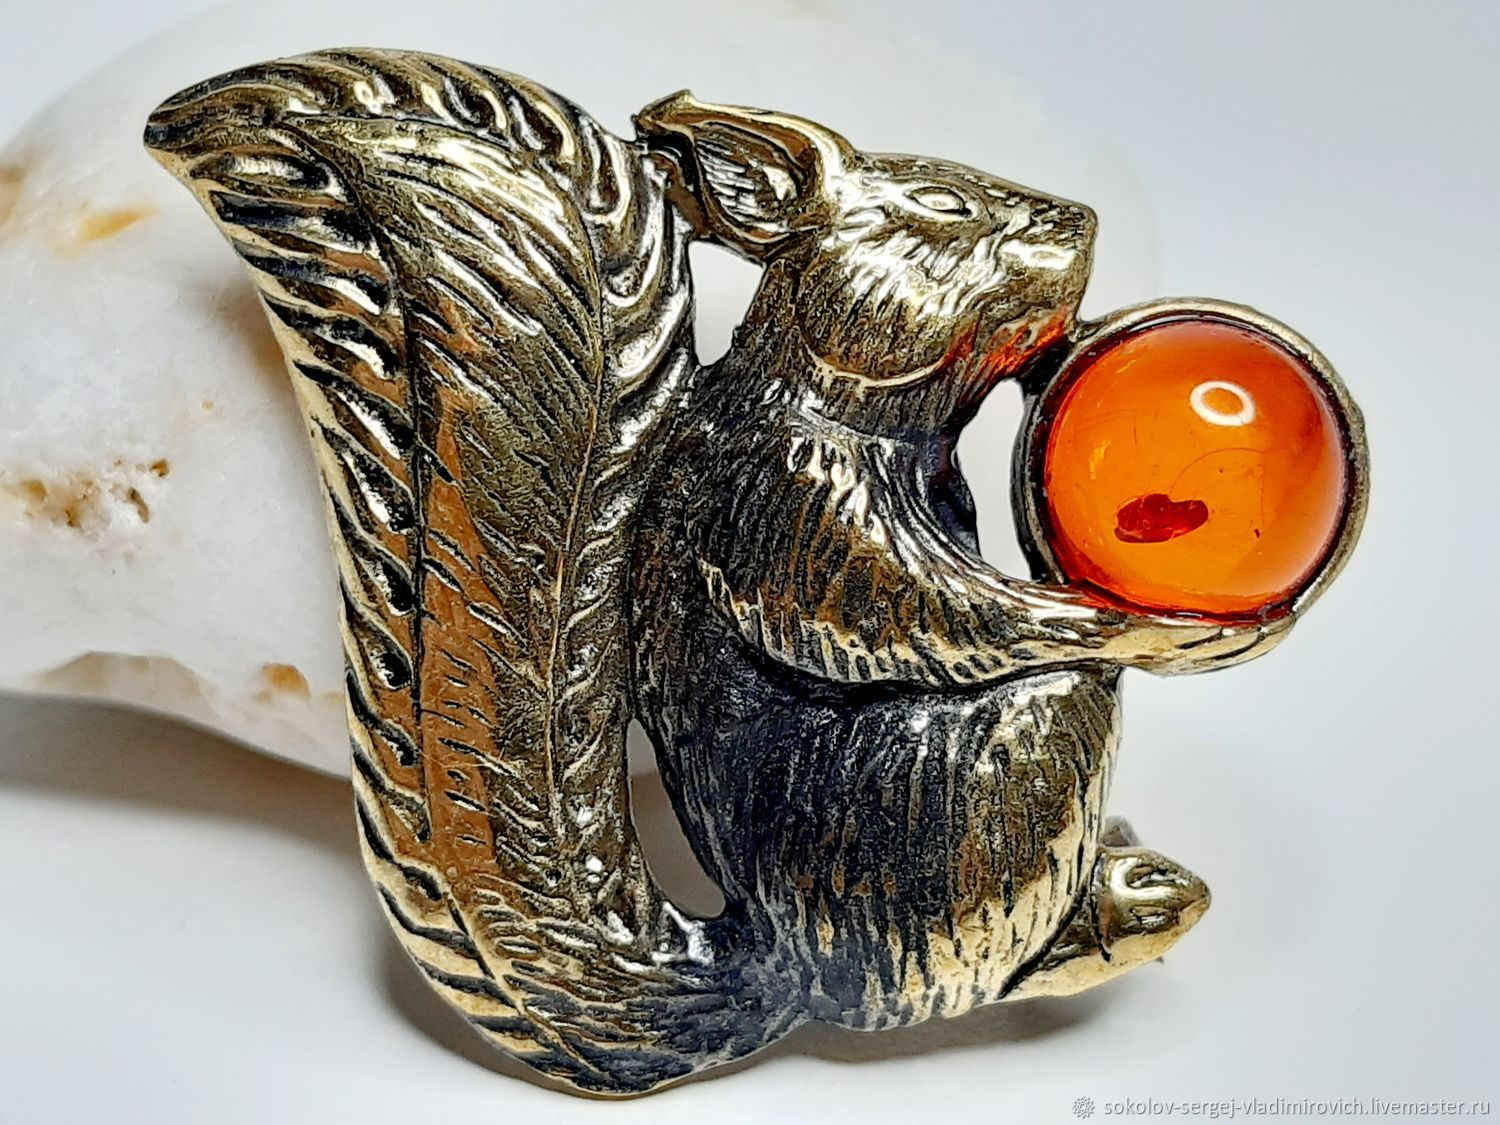 Squirrel brooch with nuts, Brooches, Moscow,  Фото №1